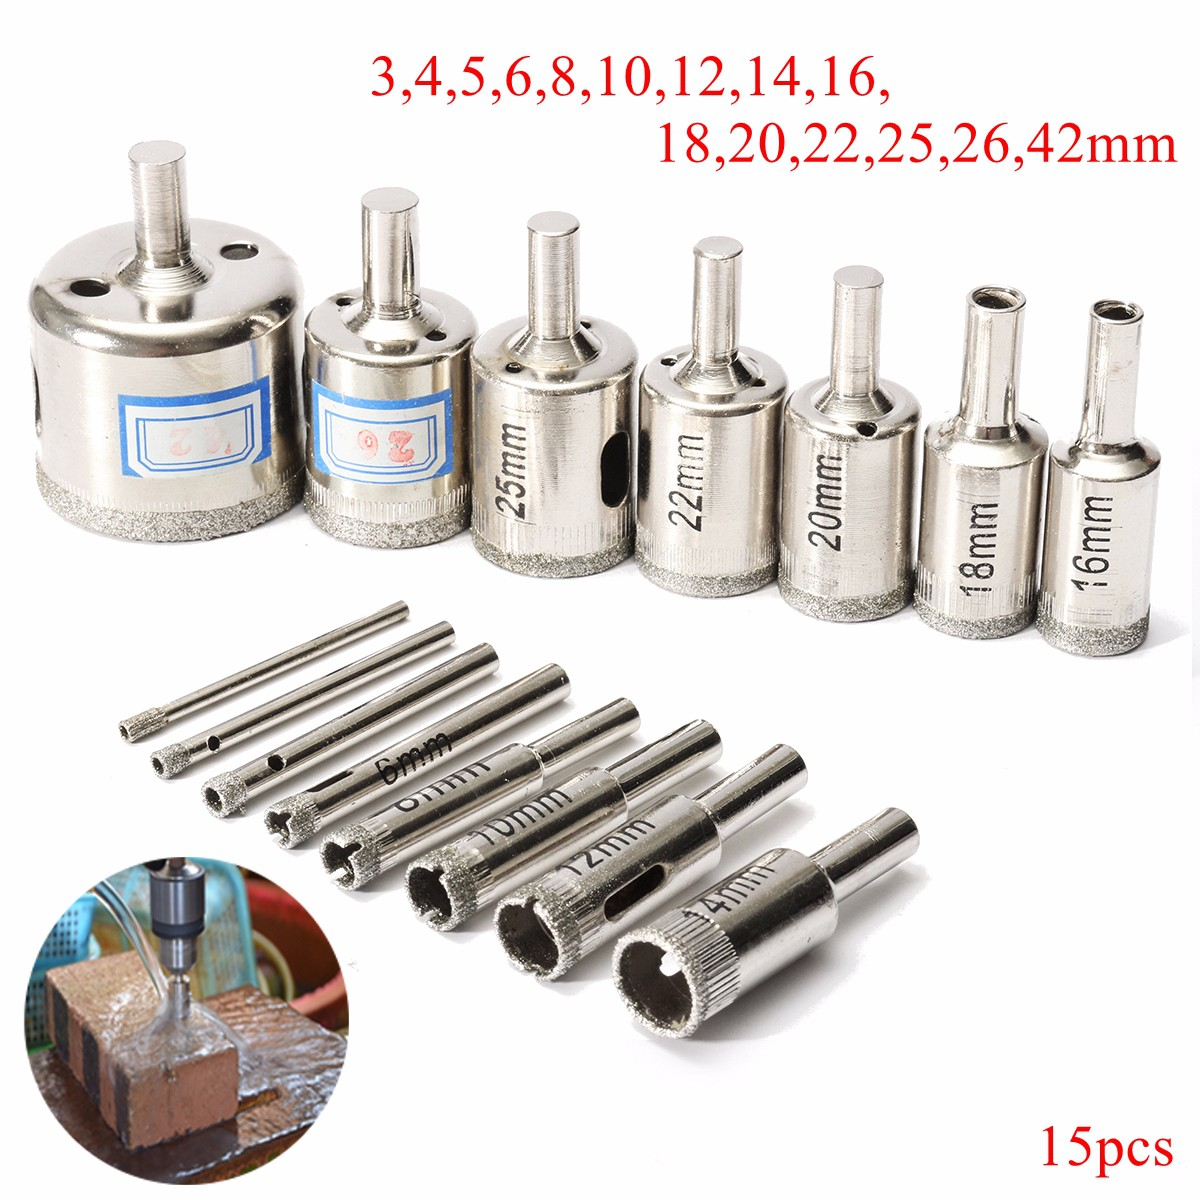 15pcs Hole Saw Set Marble Core Drill Bits 3mm-42mm Diamond Cutter Tool For Glass Marble Tile Ceramic Glass Cutting Drilling